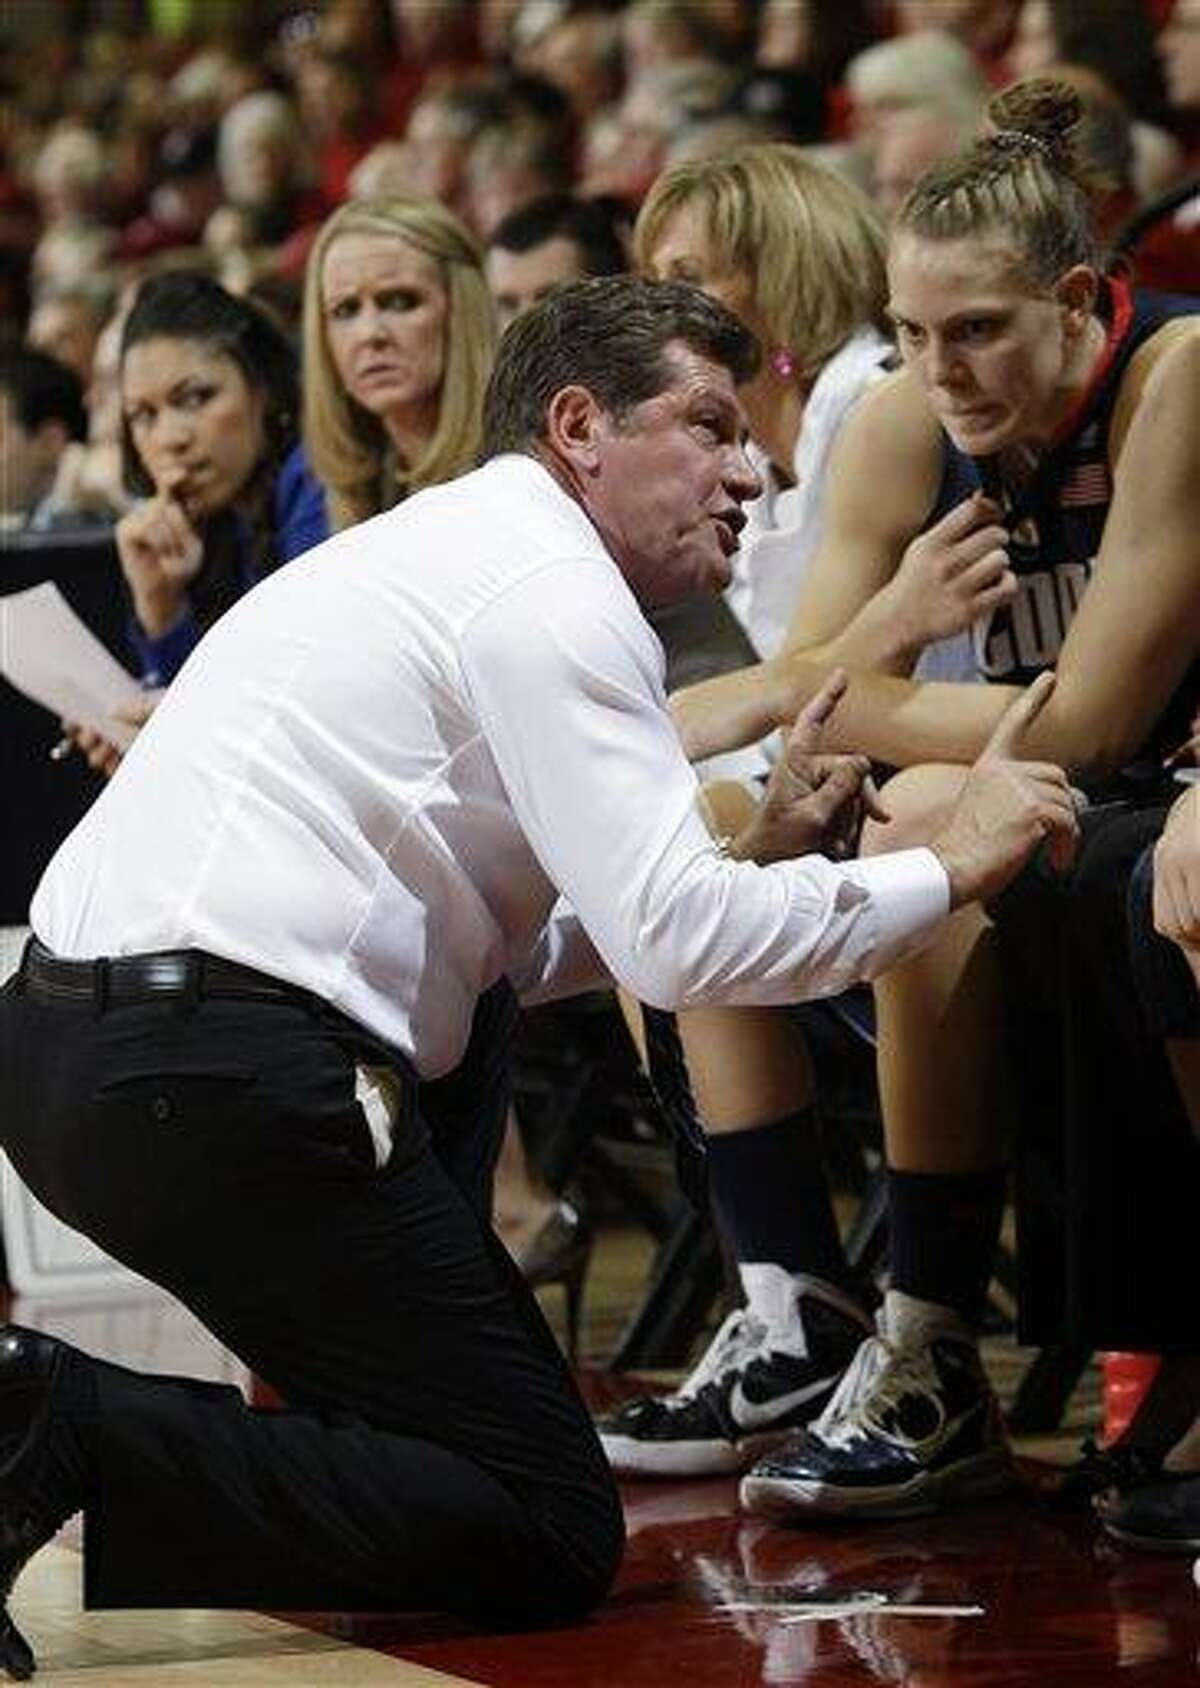 Connecticut coach Geno Auriemma talks with his team in the first half of Connecticut's 71-59 loss to Stanford in an NCAA college basketball game in Stanford, Calif., Thursday, Dec. 30, 2010. Stanford's win ended Connecticut's 90-game winning streak. (AP Photo/Paul Sakuma)